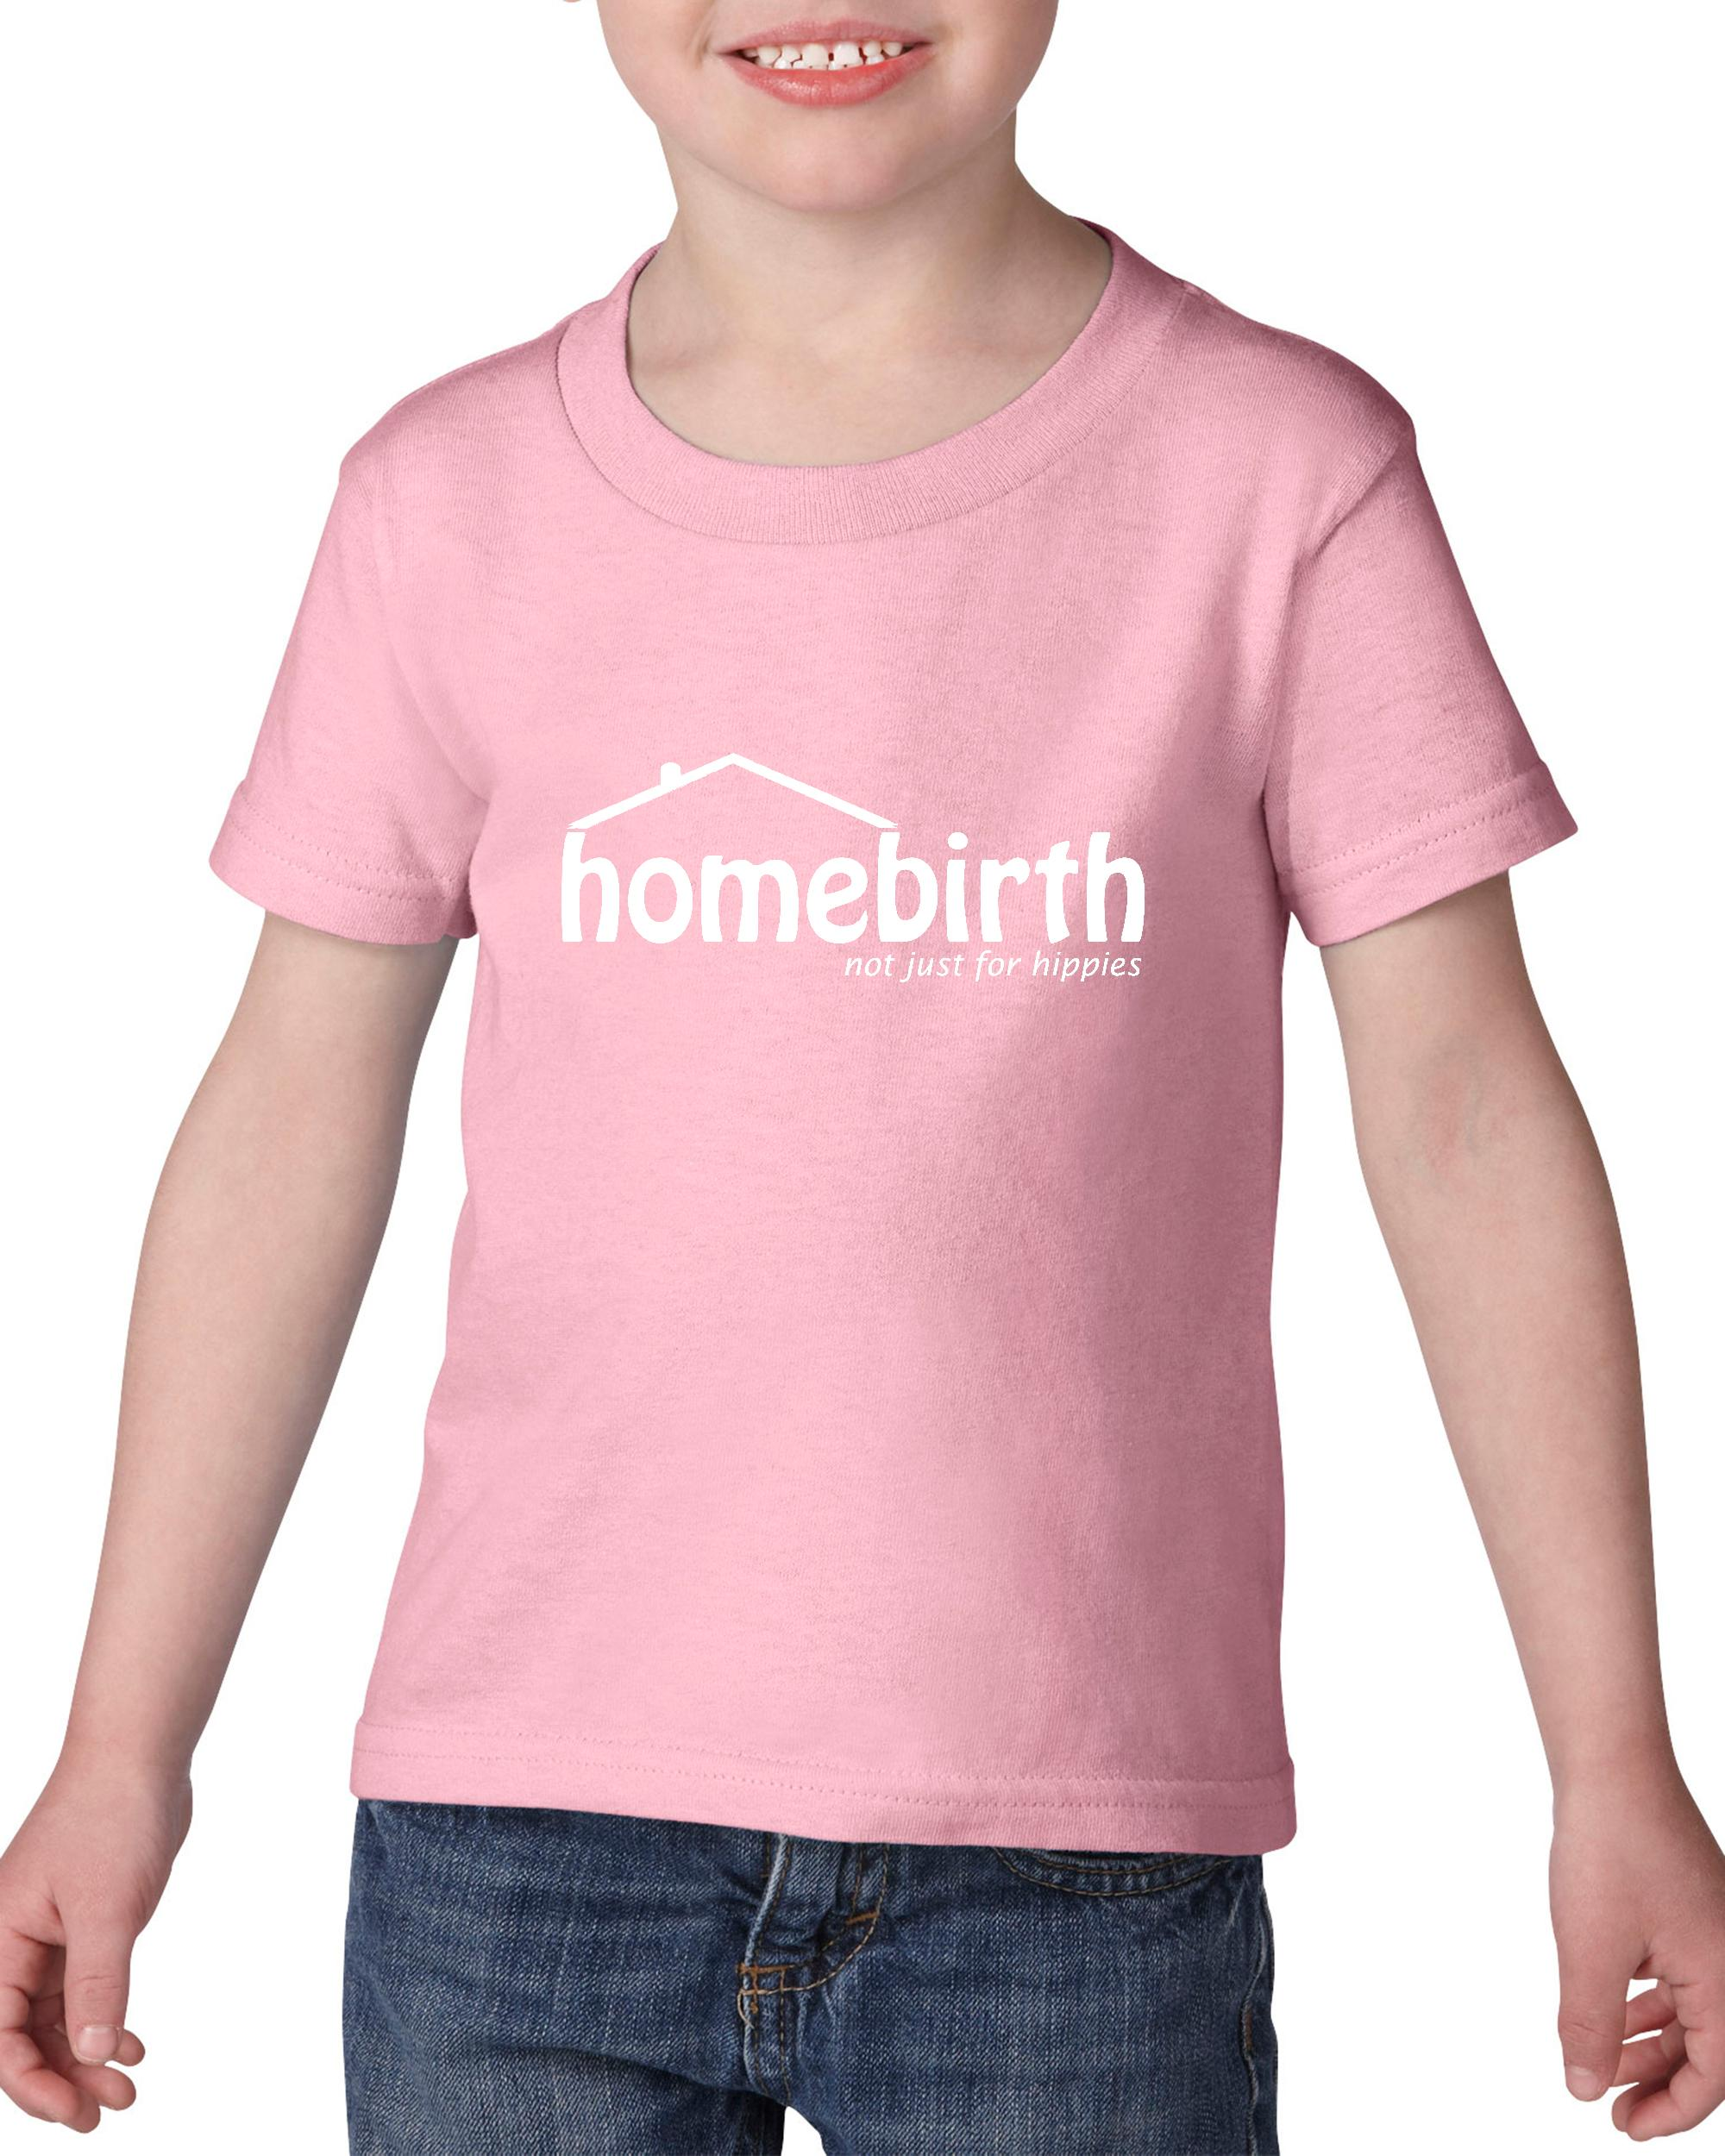 Artix Home Birth Just For Hippies Gift for Mothers Heavy Cotton Toddler Kids T-Shirt Tee Clothing